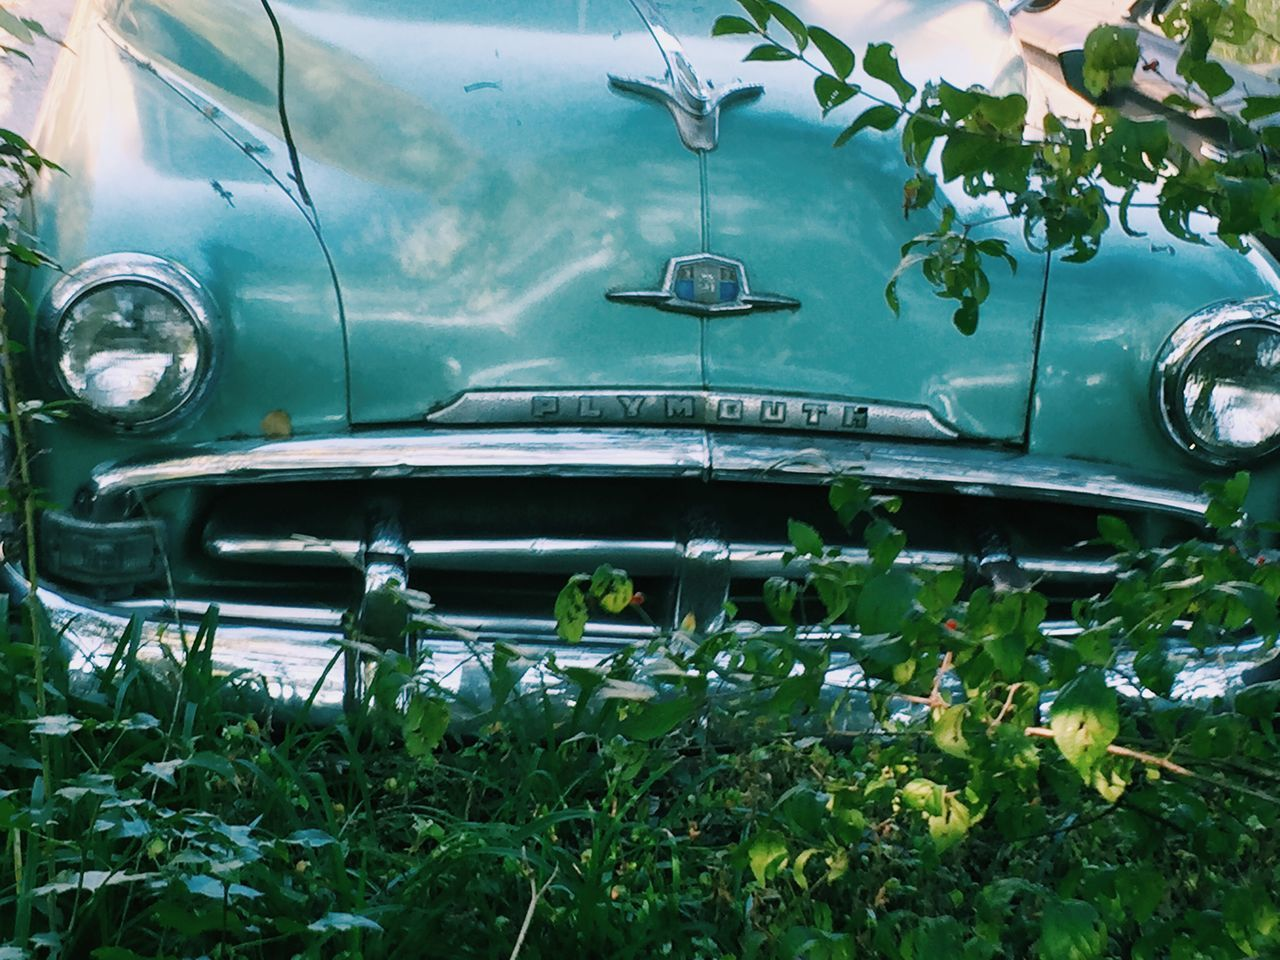 car, land vehicle, transportation, mode of transport, vintage car, headlight, old-fashioned, leaf, retro styled, day, green color, plant, outdoors, collector's car, close-up, no people